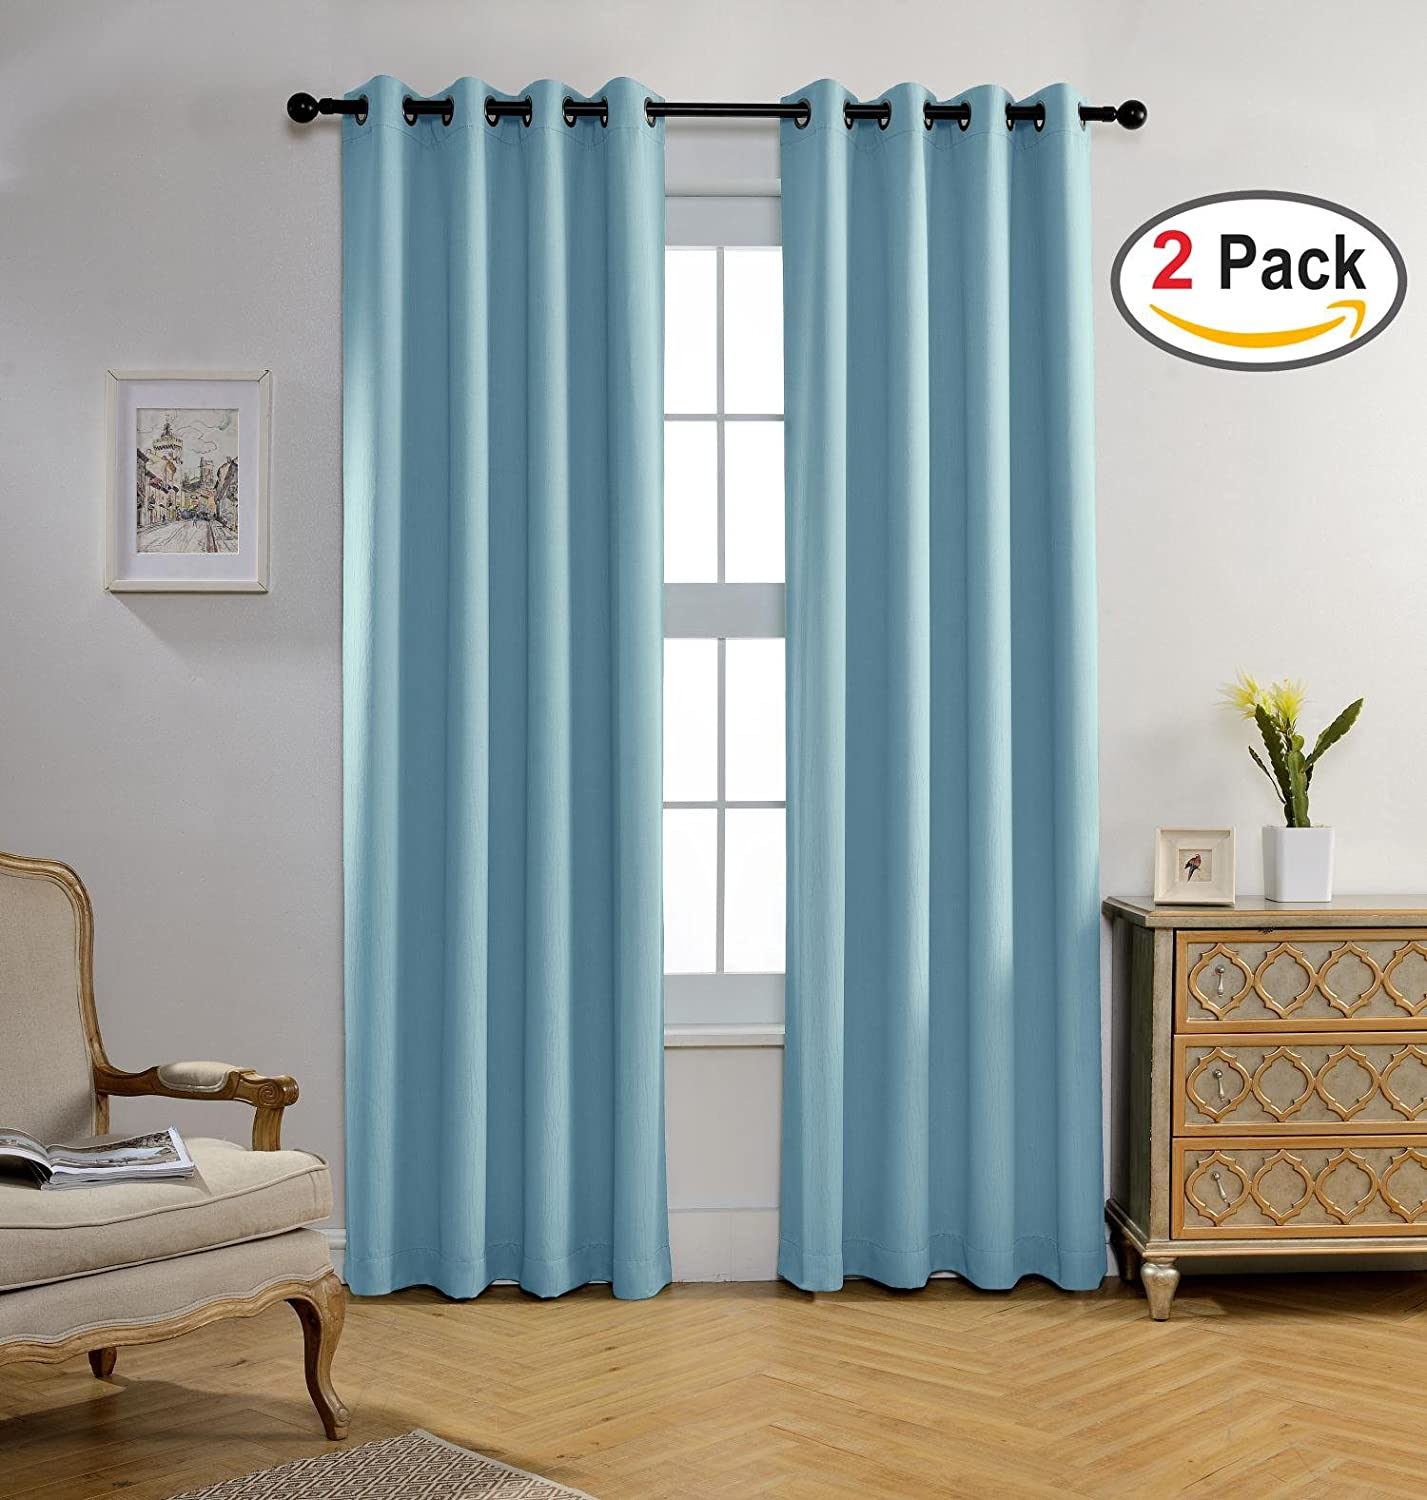 Sky Blue Miuco Blackout Curtains Room Darkening Curtains Textured Grommet Panels